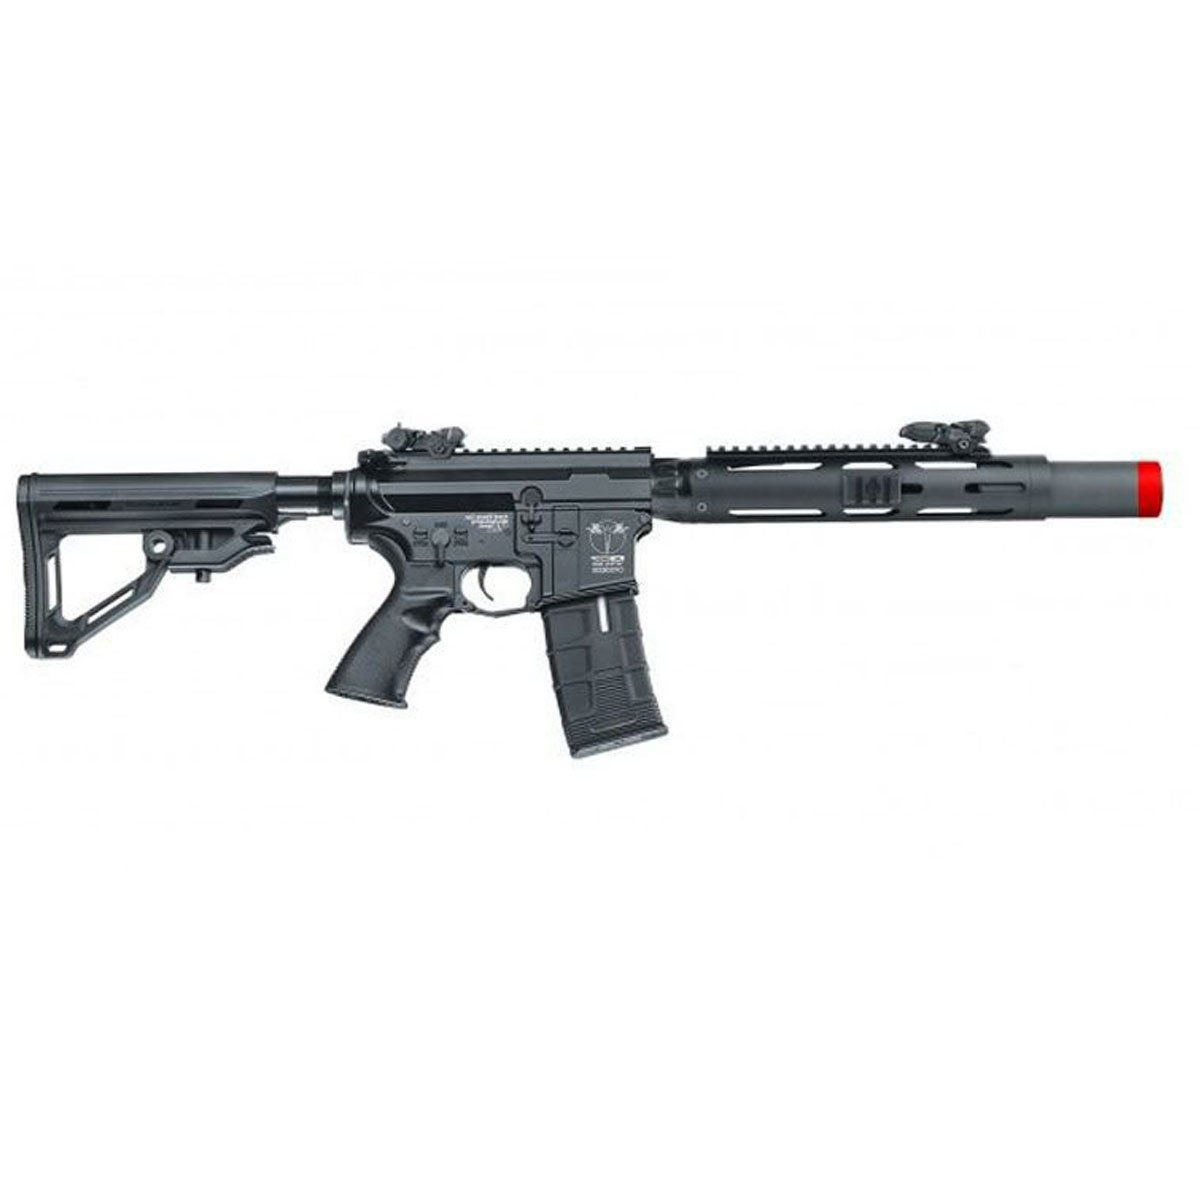 Rifle de Airsoft ICS CXP-HOG SD MTR ICS-380 eletrica 6mm